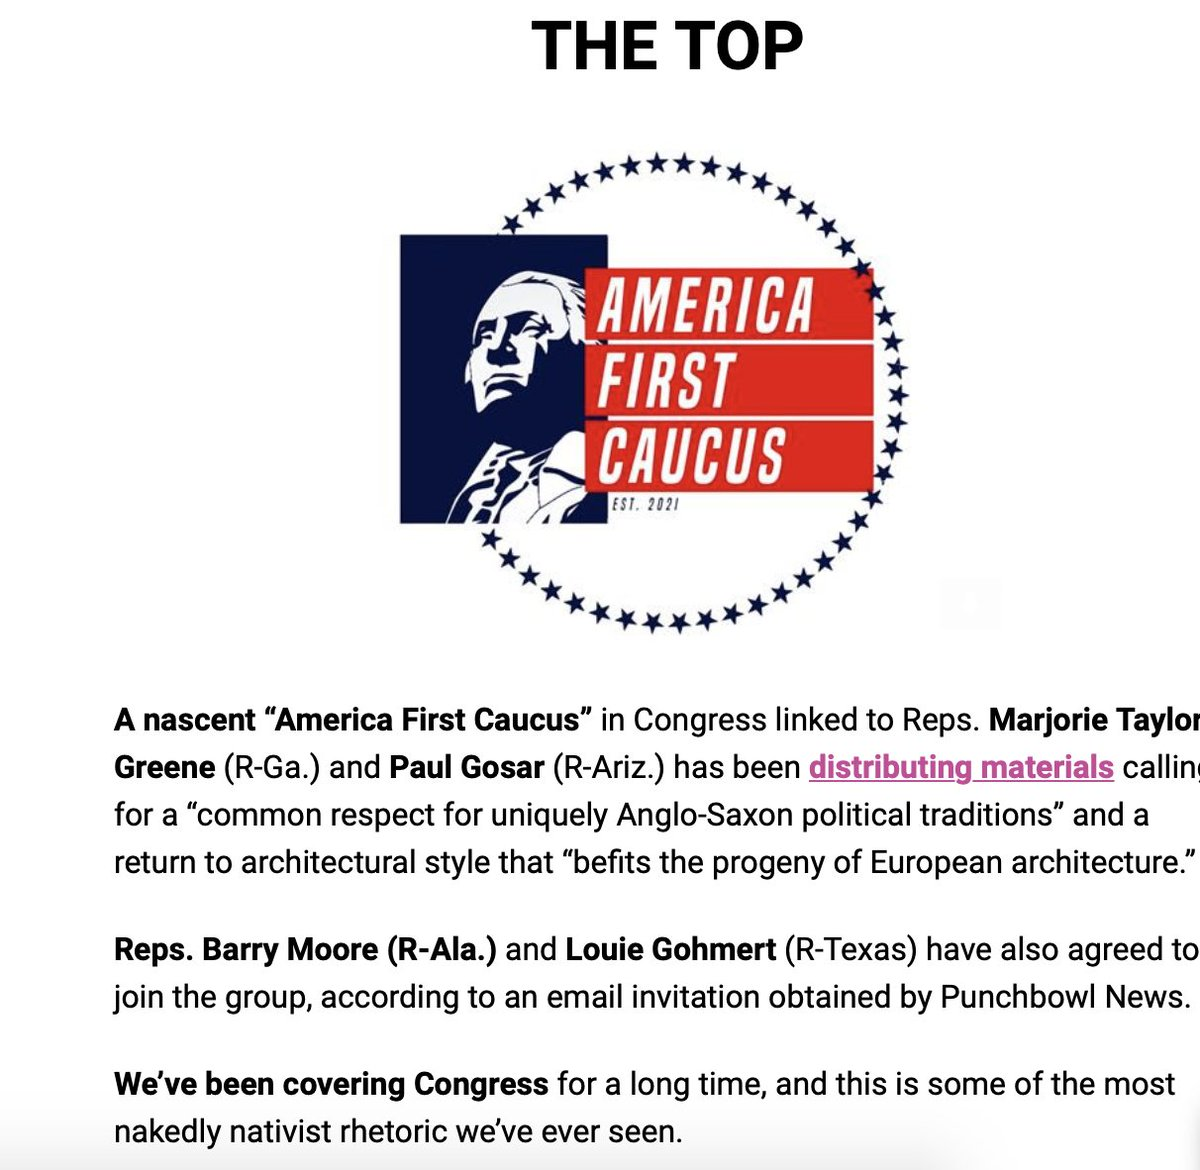 """NEW In @PunchbowlNews Midday  A new America First Caucus — led by @mtgreenee and @RepGosar — is recruiting people to join based on """"Anglo-Saxon political traditions"""" architectural style that """"befits the progeny of European architecture""""  Some of the most nativist stuff we've seen https://t.co/diPDItUt2V"""